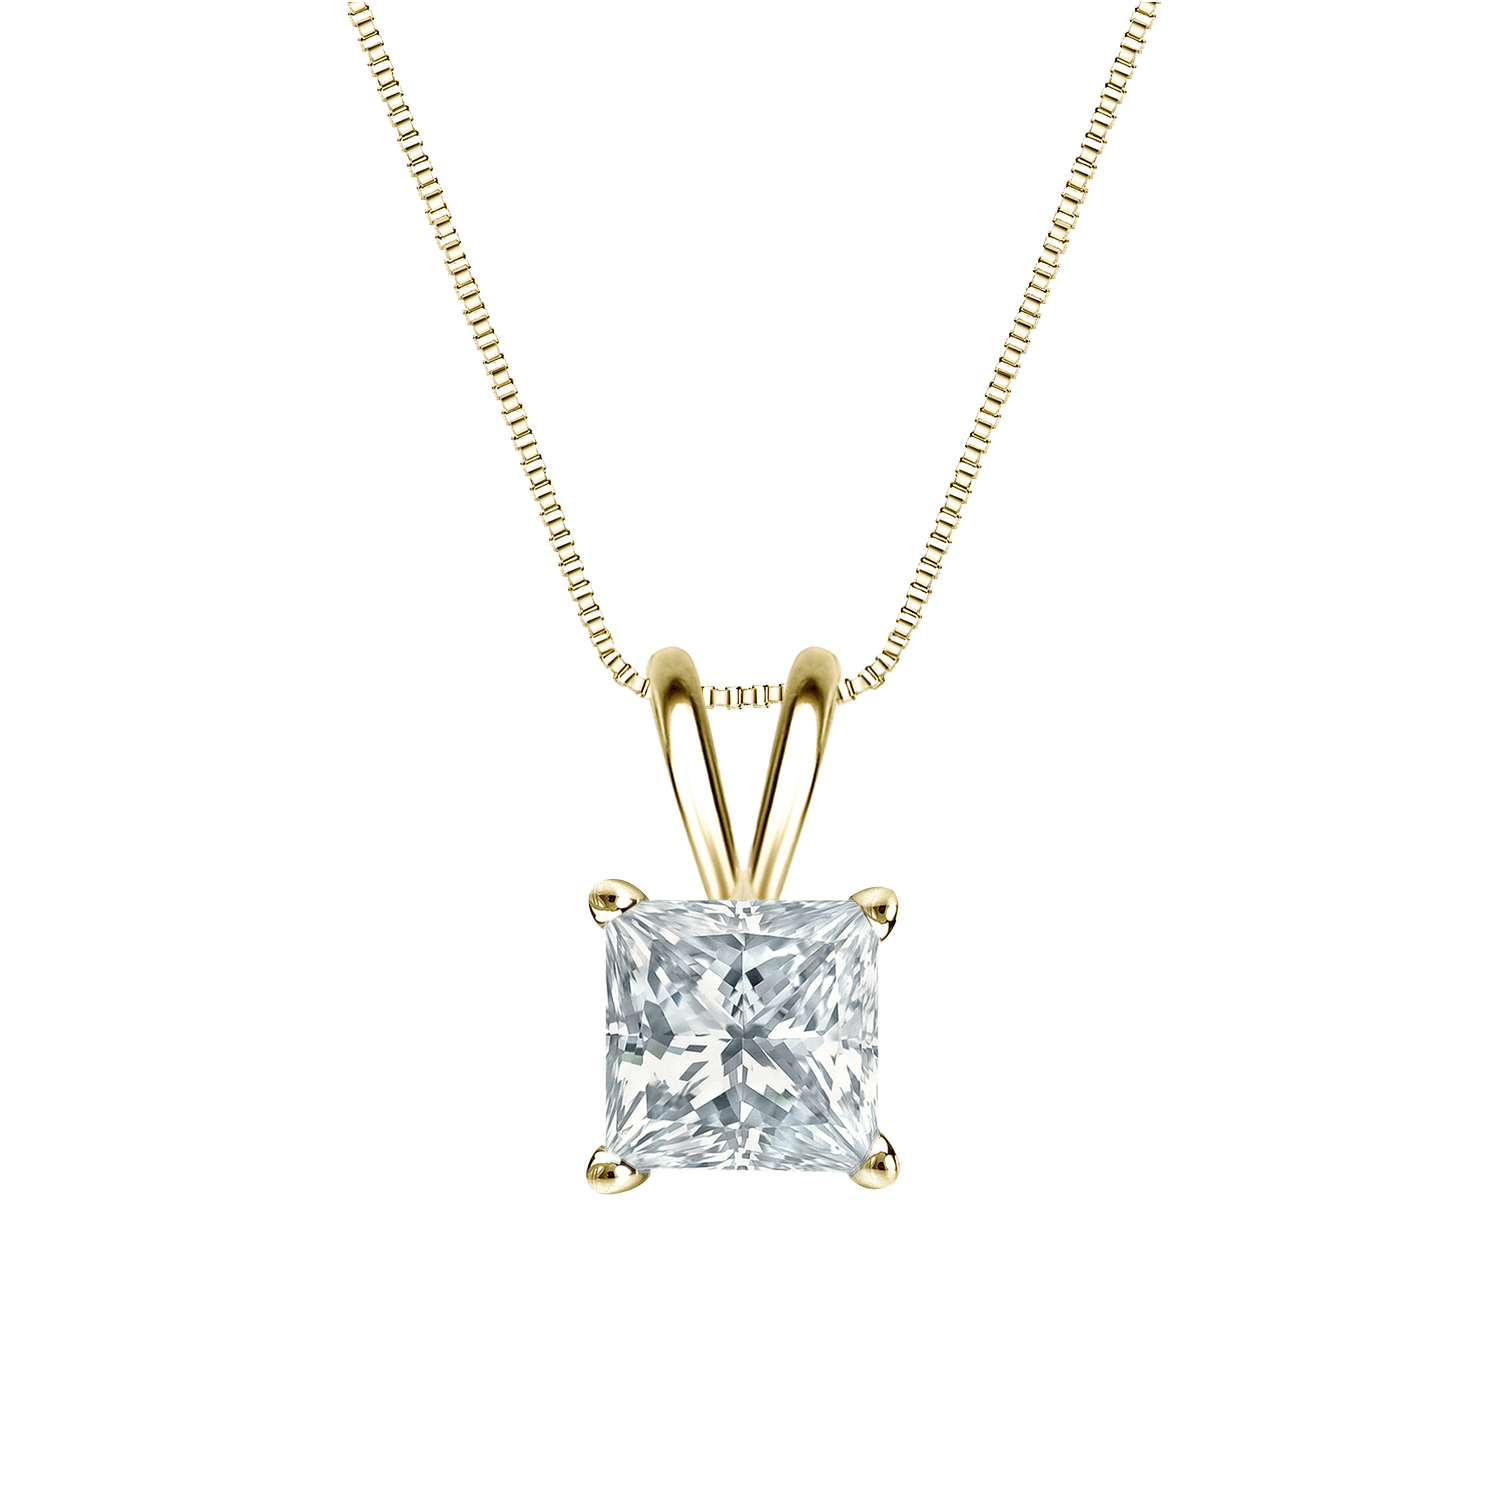 Certified 0.25 ct. tw. Princess Diamond Solitaire Pendant in 14k Yellow Gold 4-Prong Basket (G-H, SI)